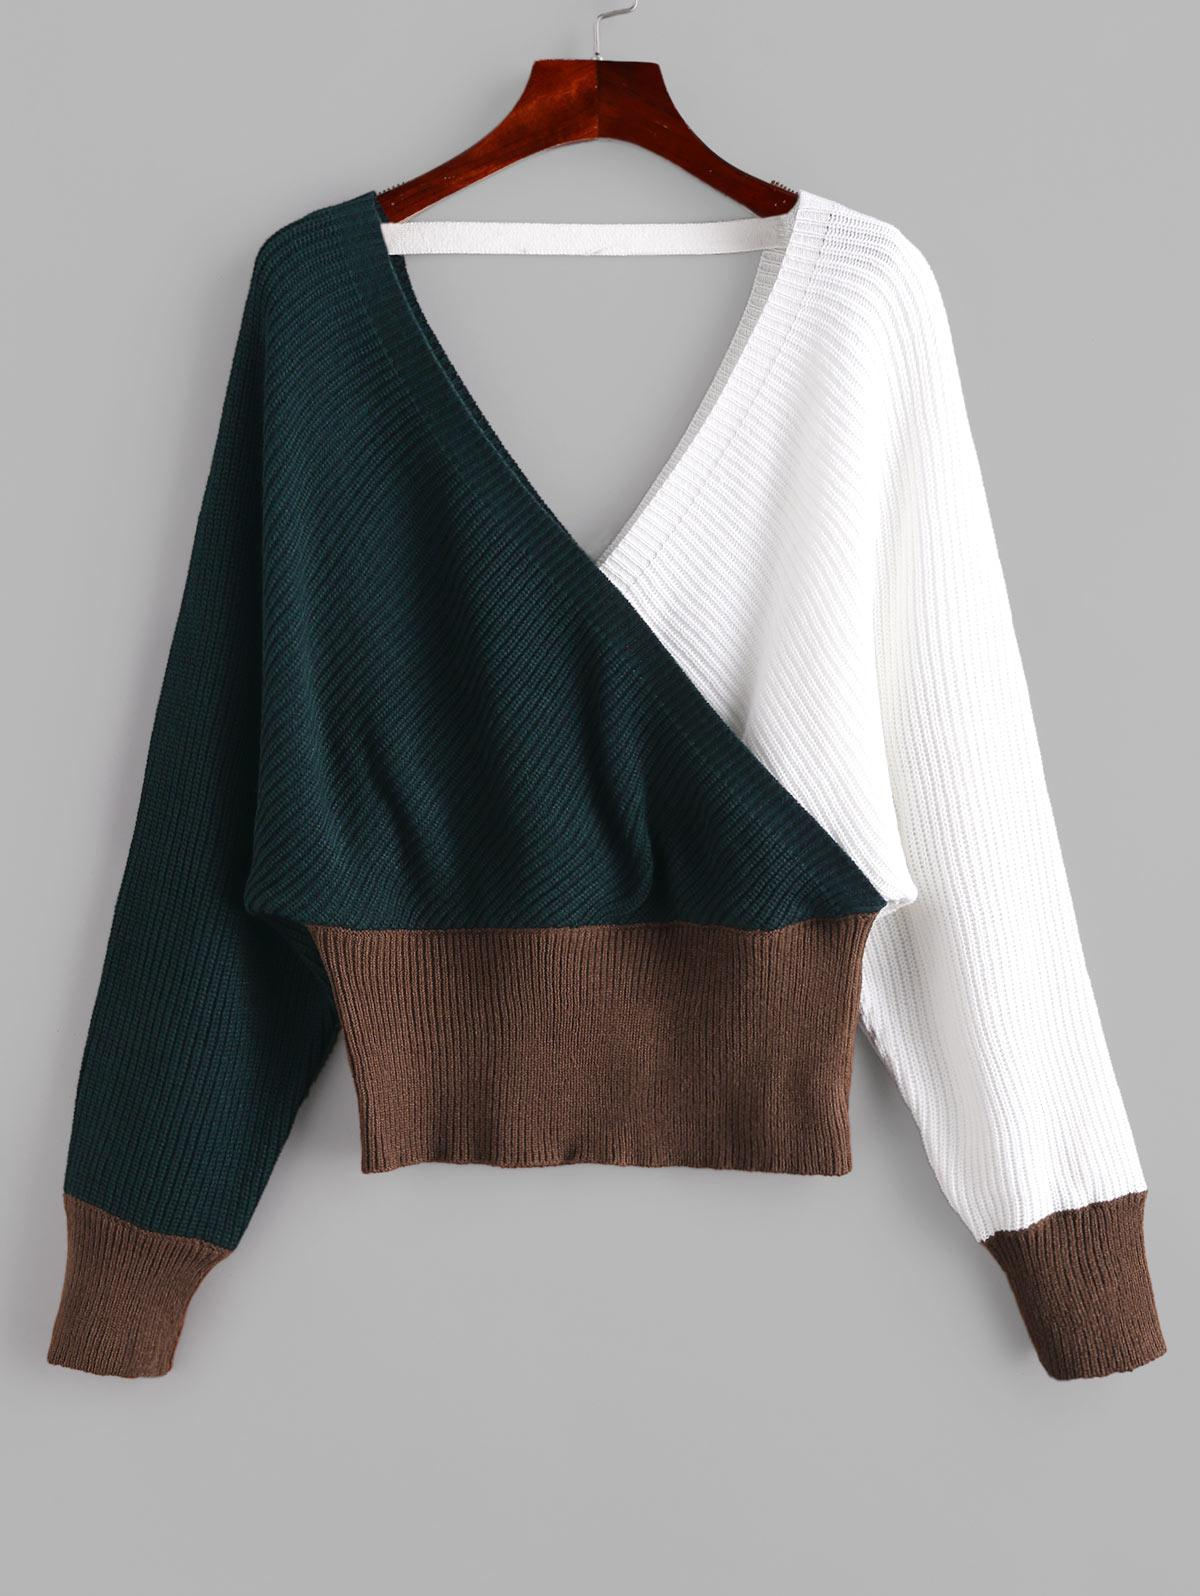 ZAFUL V Neck Colorblock Cross Front Jumper Sweater фото